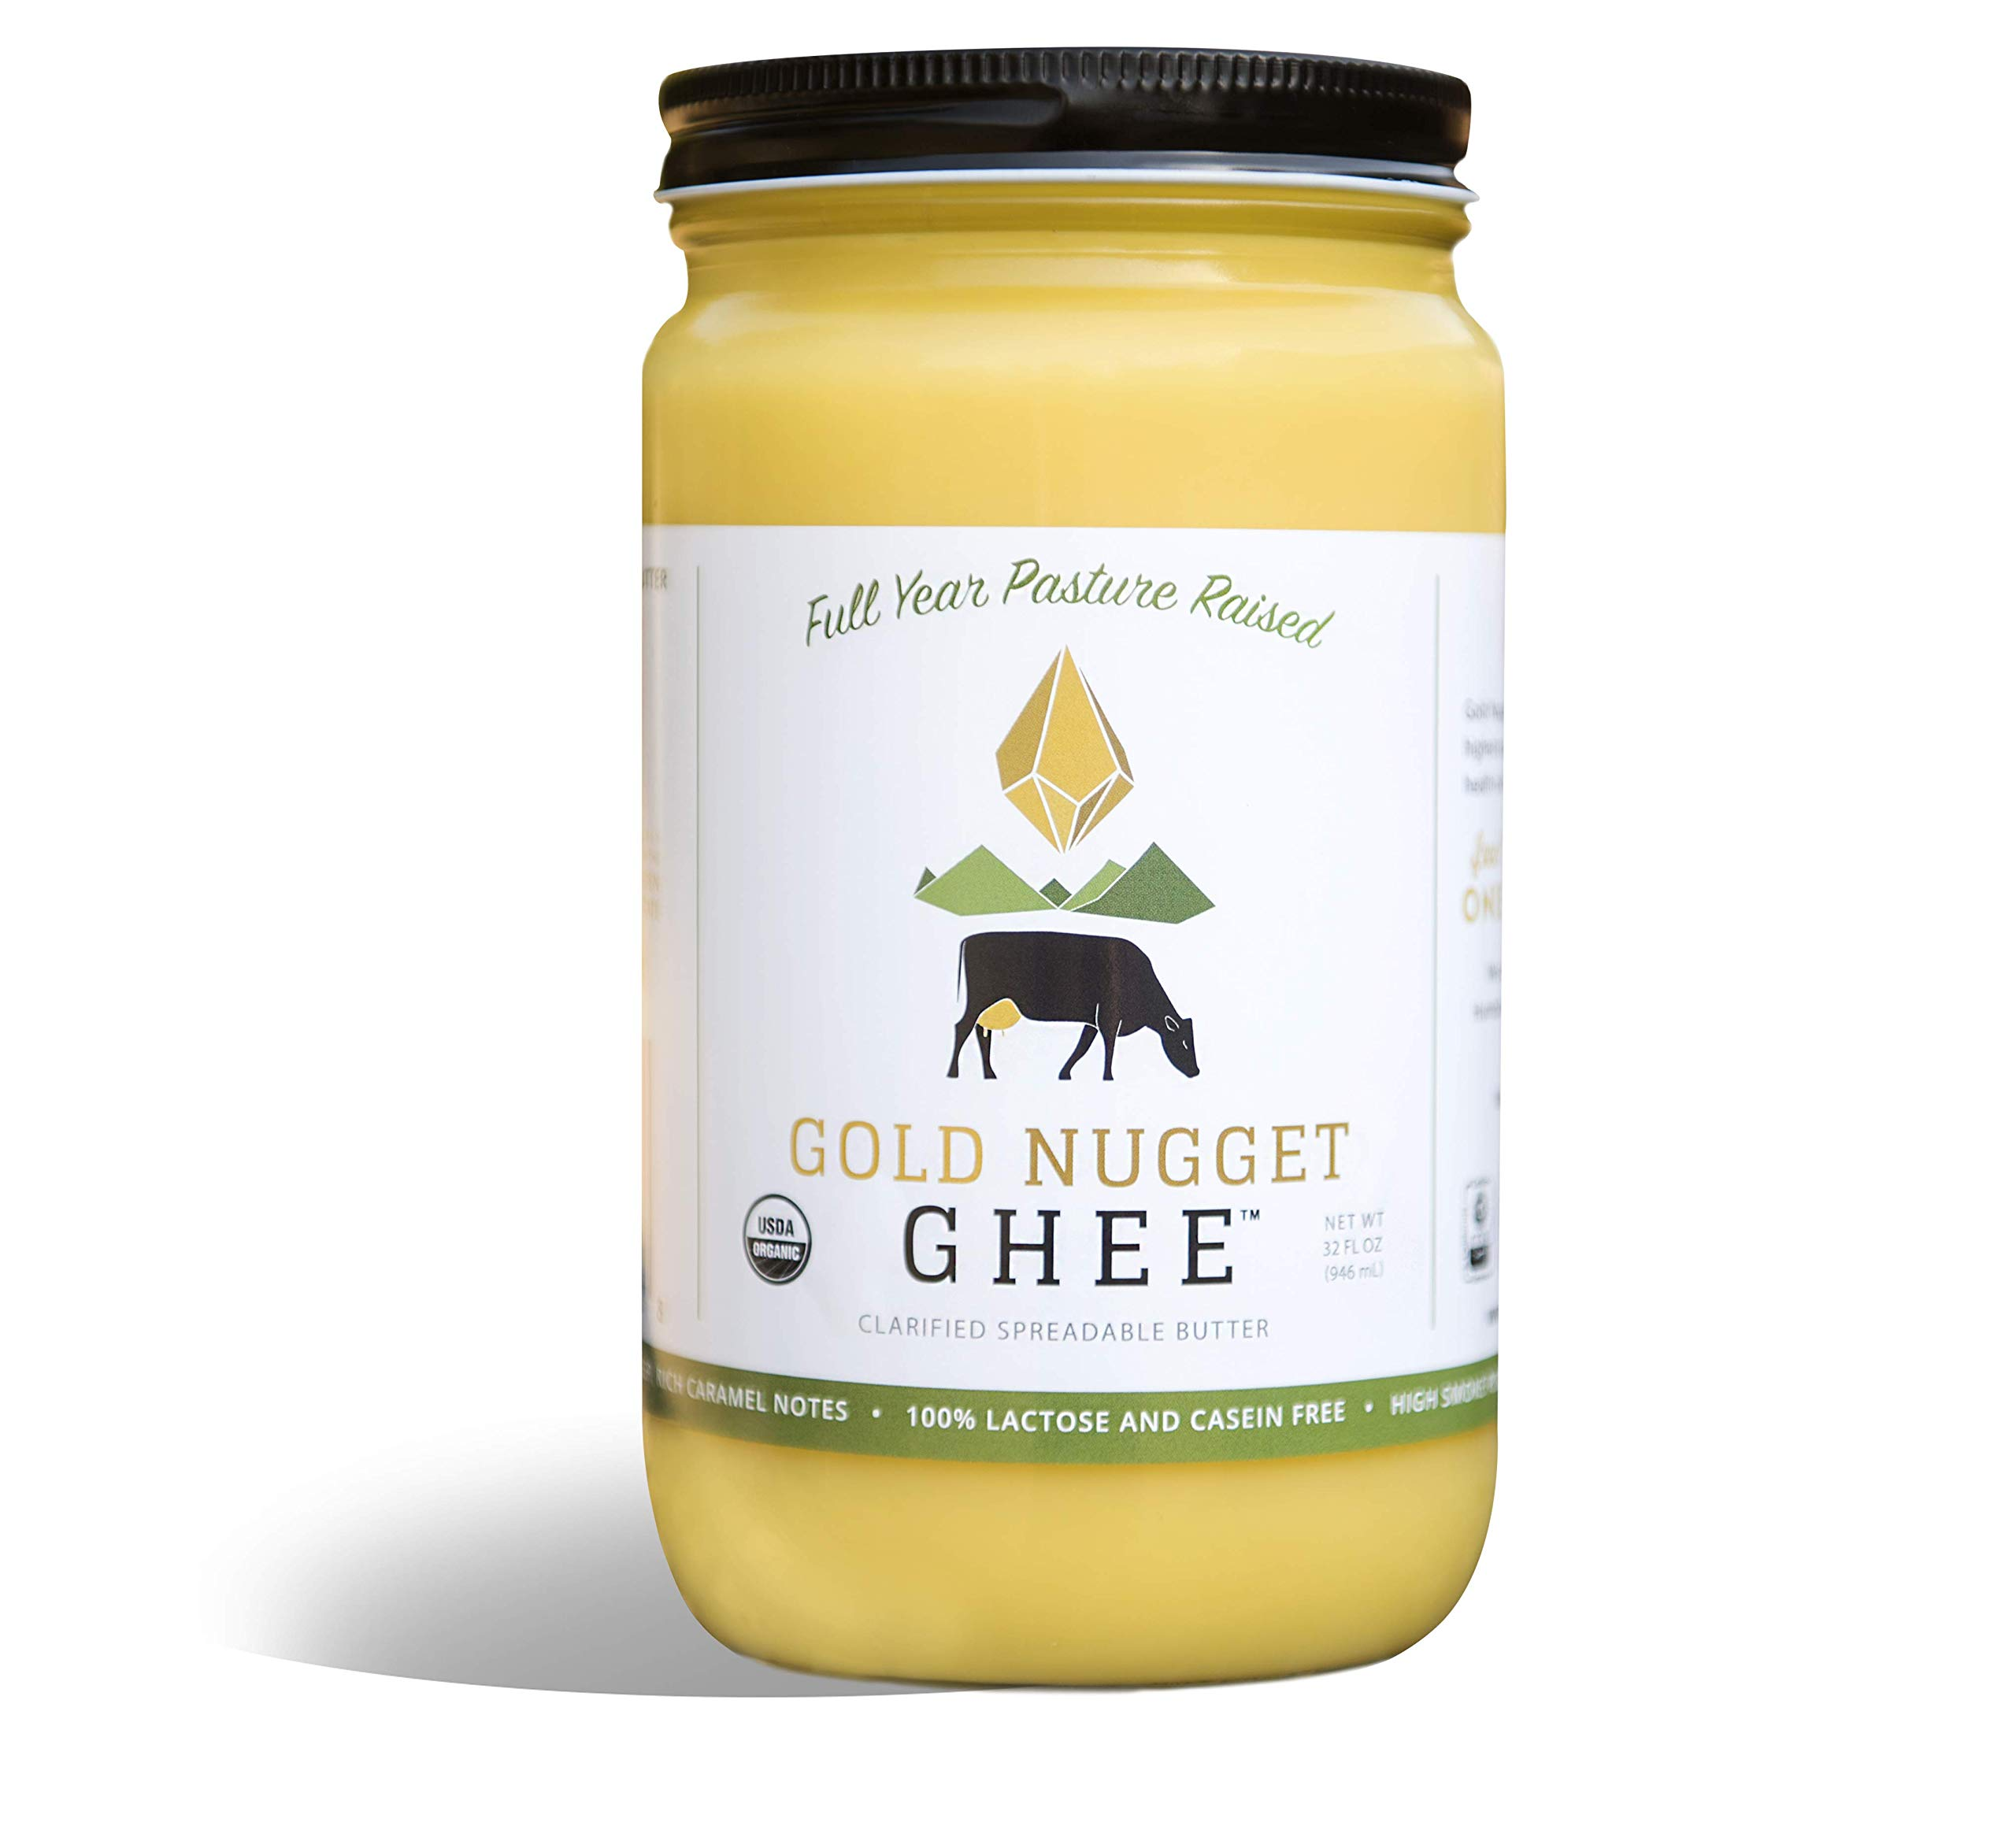 TRADITIONAL GHEE BY GOLD NUGGET GHEE USDA ORGANIC FULL YEAR PASTURE RAISED GRASS-FED BUTTER (32oz)